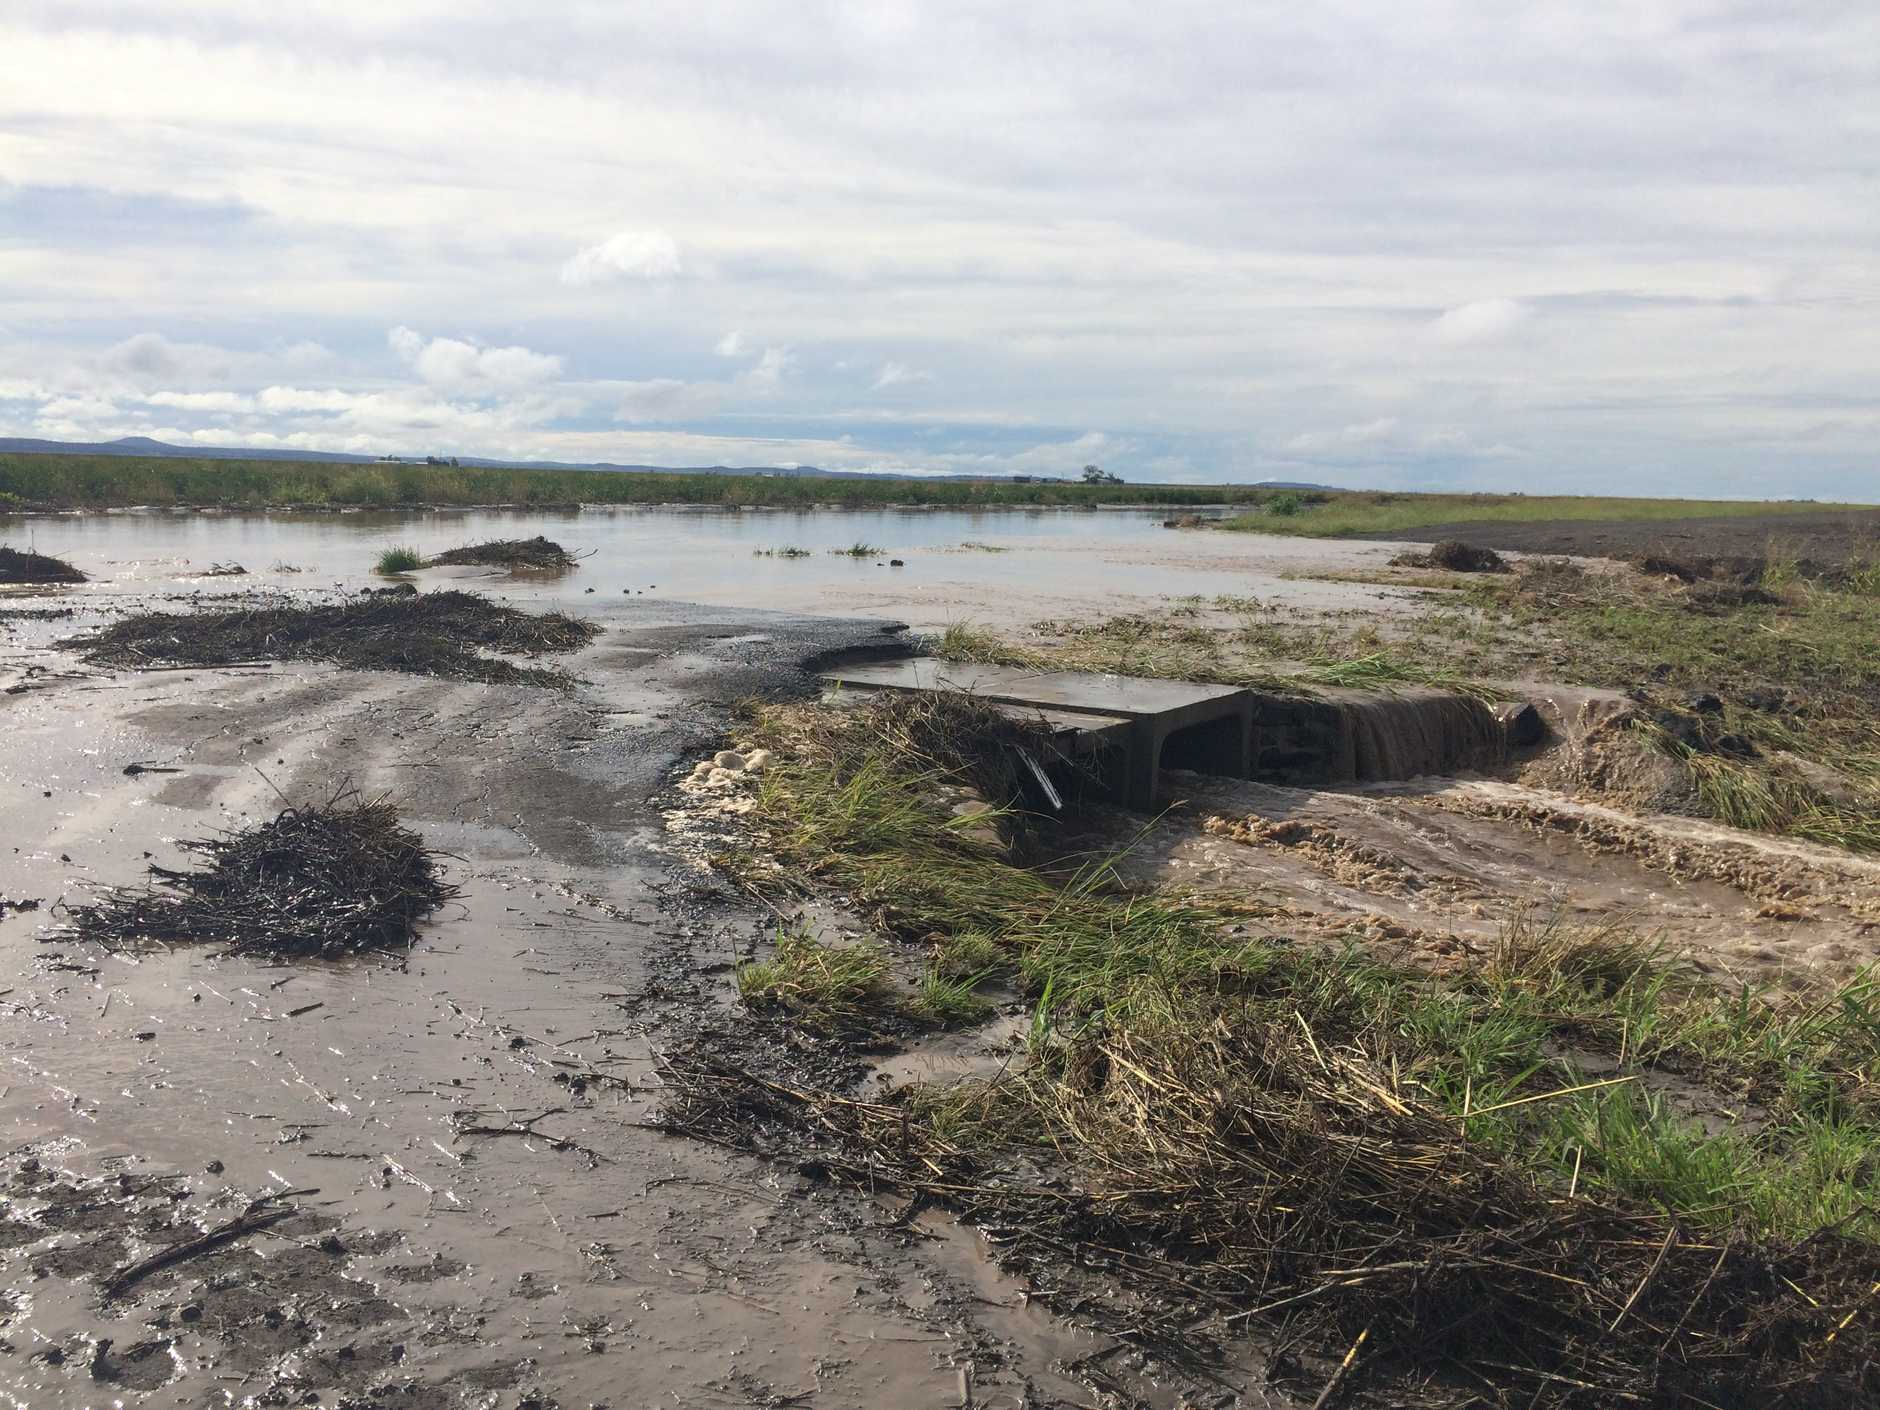 A ute was swept into flood waters off Keeley Rd. Photo of Dooley Rd which runs off Keeley Rd shows the wet muddy floodwater.